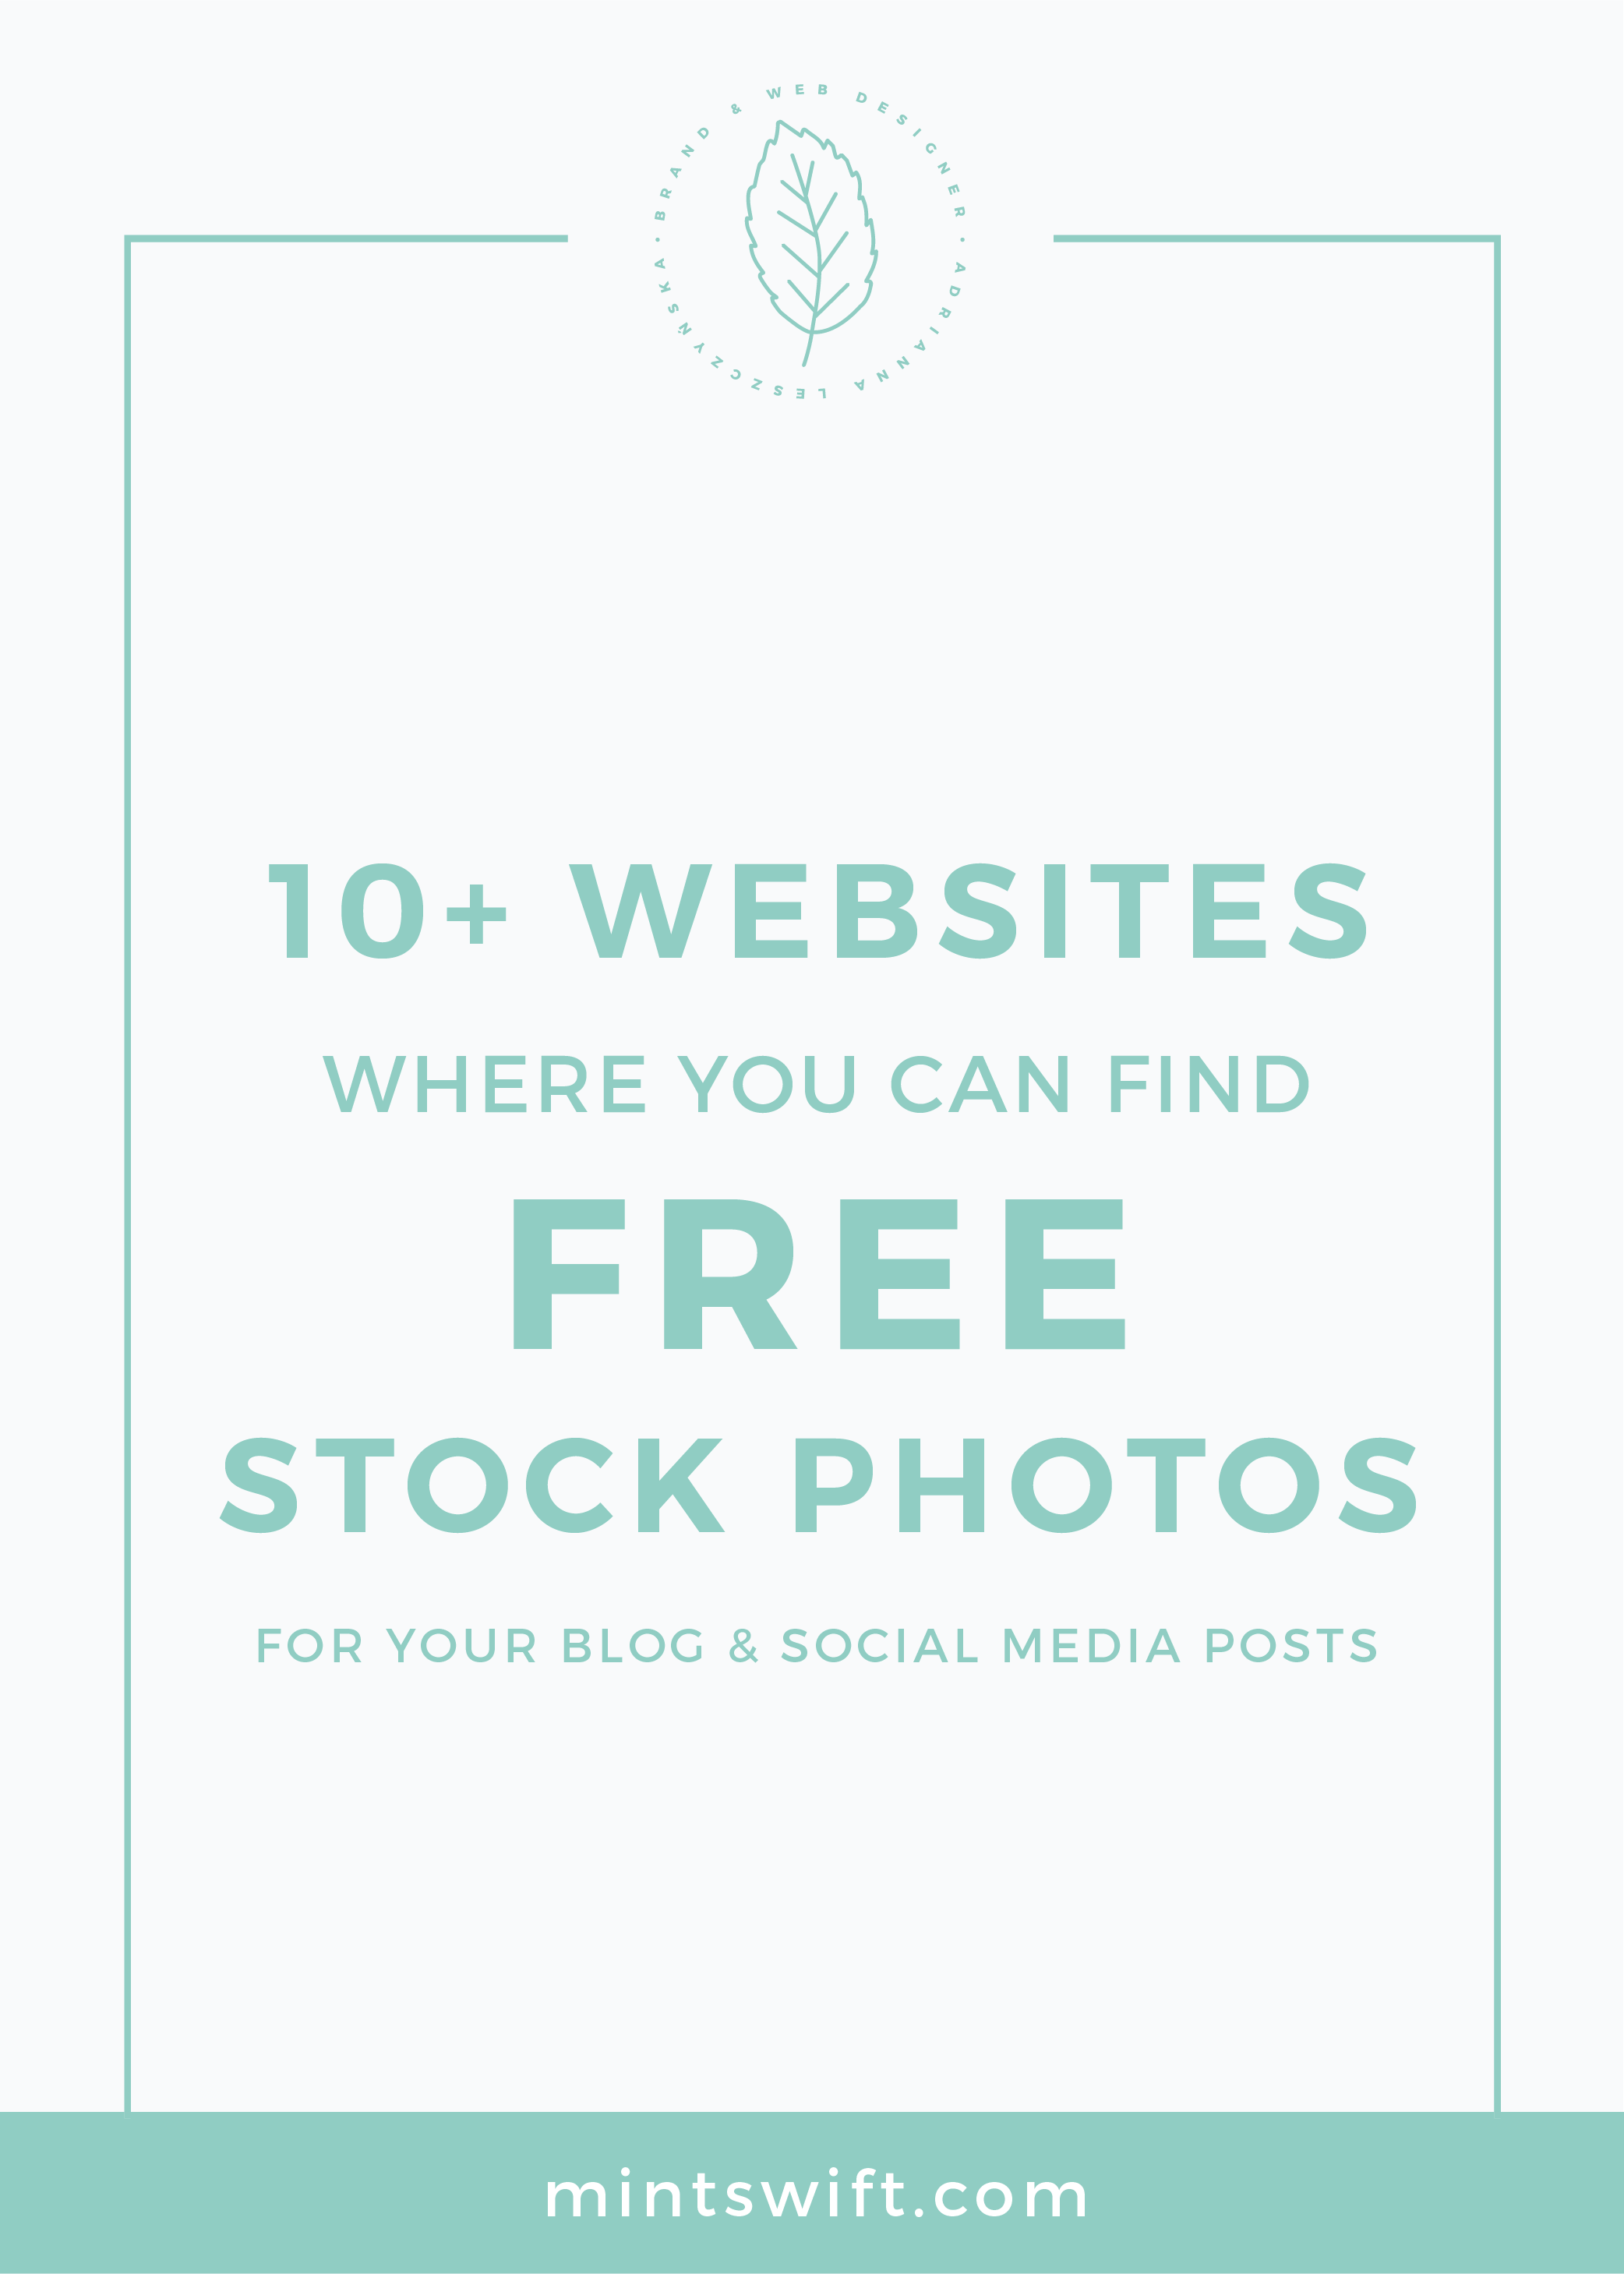 10+ Websites Where You Can Find Free Stock Photos for Your Blog and Social Media Posts MintSwift